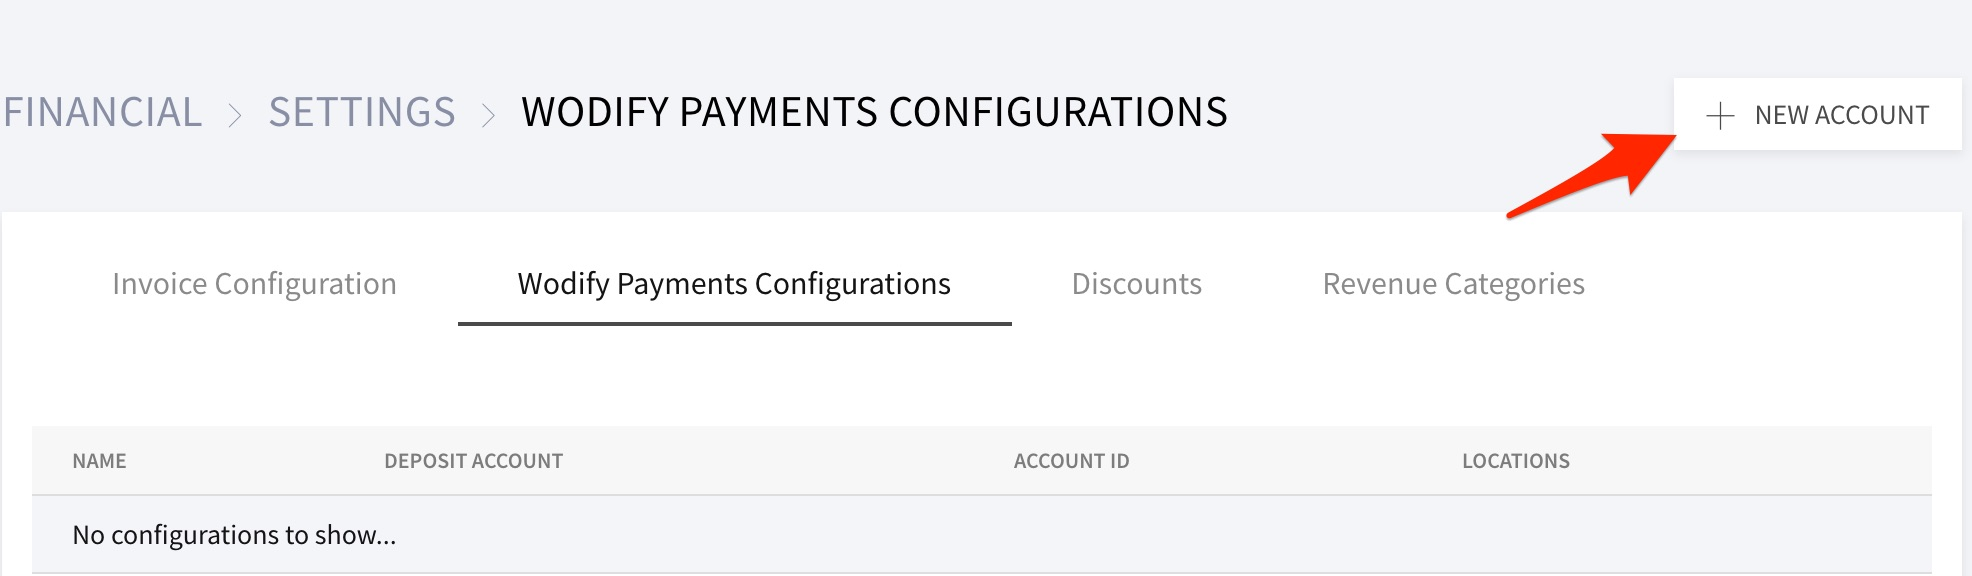 Wodify_Payments_Configurations.jpg